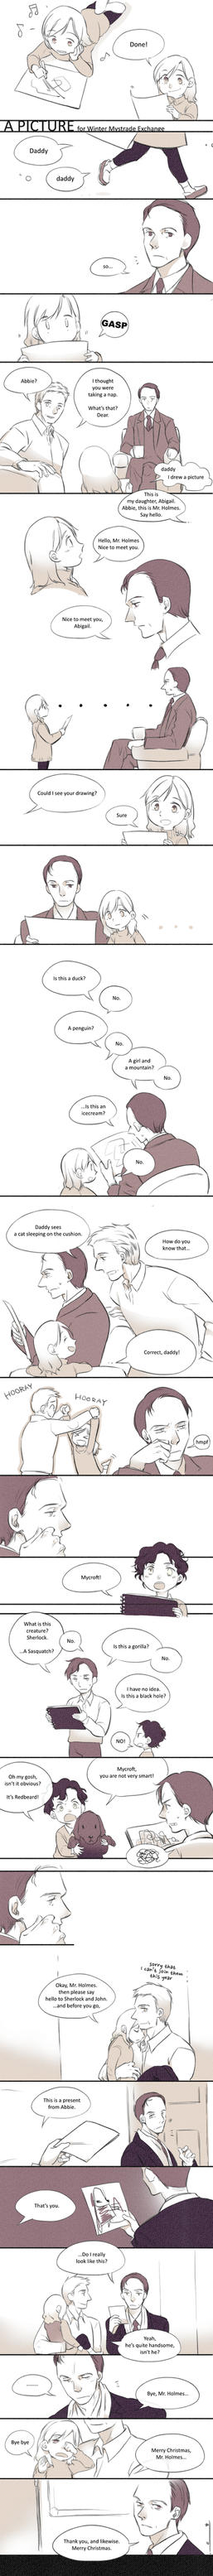 Sherlock - A picture by zzigae